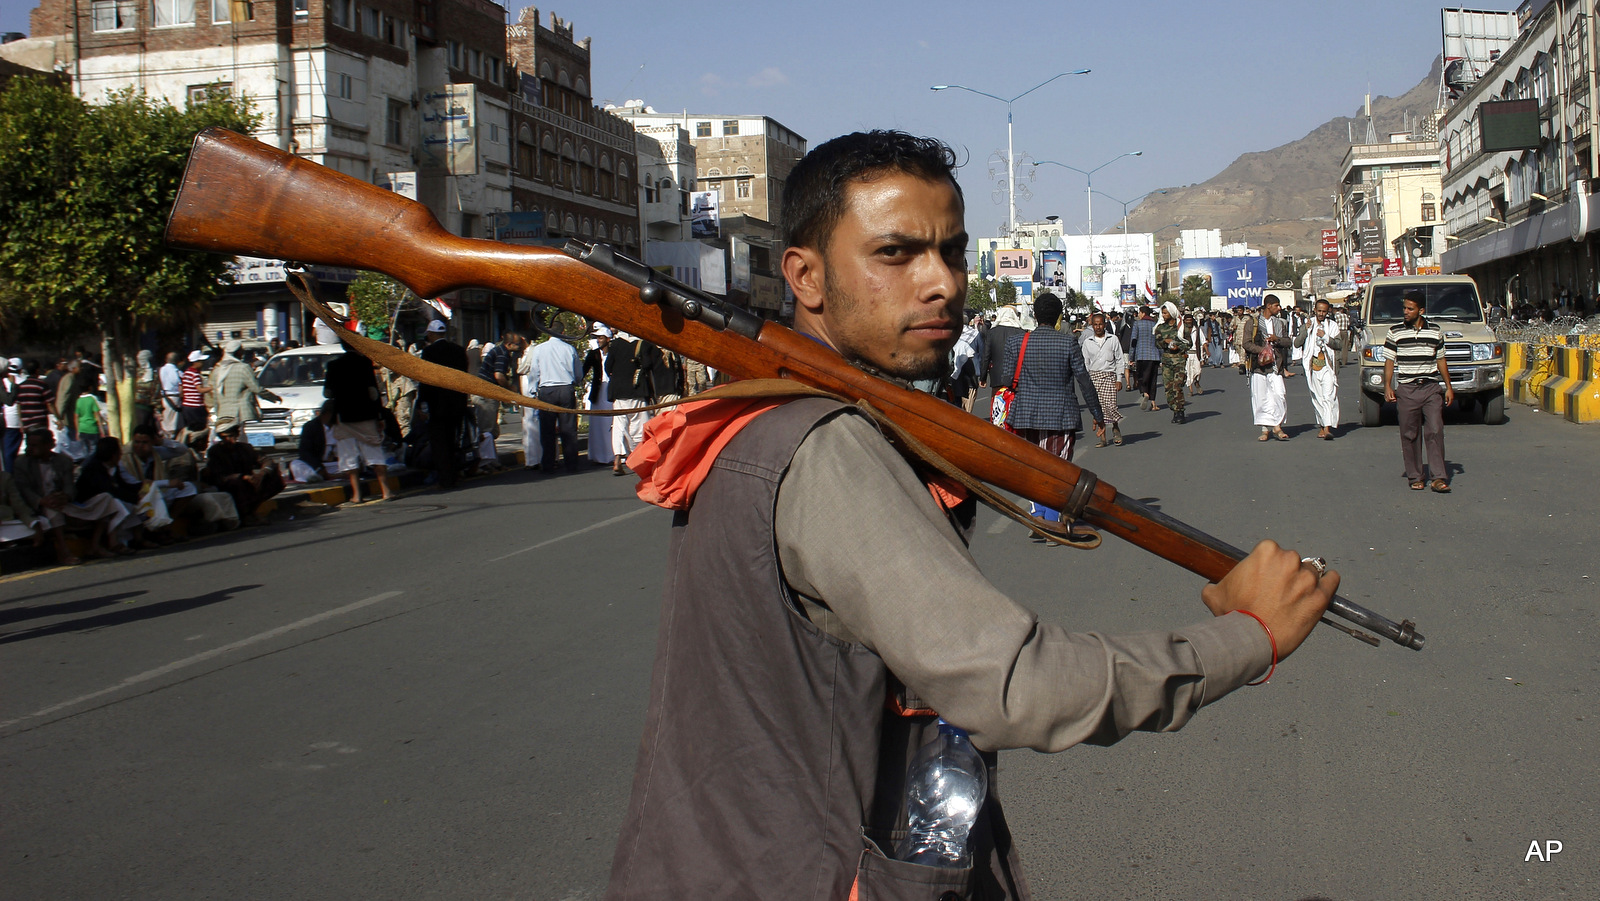 A Houthi Shiite rebel carries his weapon as he joins others to protest against Saudi-led airstrikes, during a rally in Sanaa, Yemen, April 1, 2015. . (AP/Hani Mohammed)